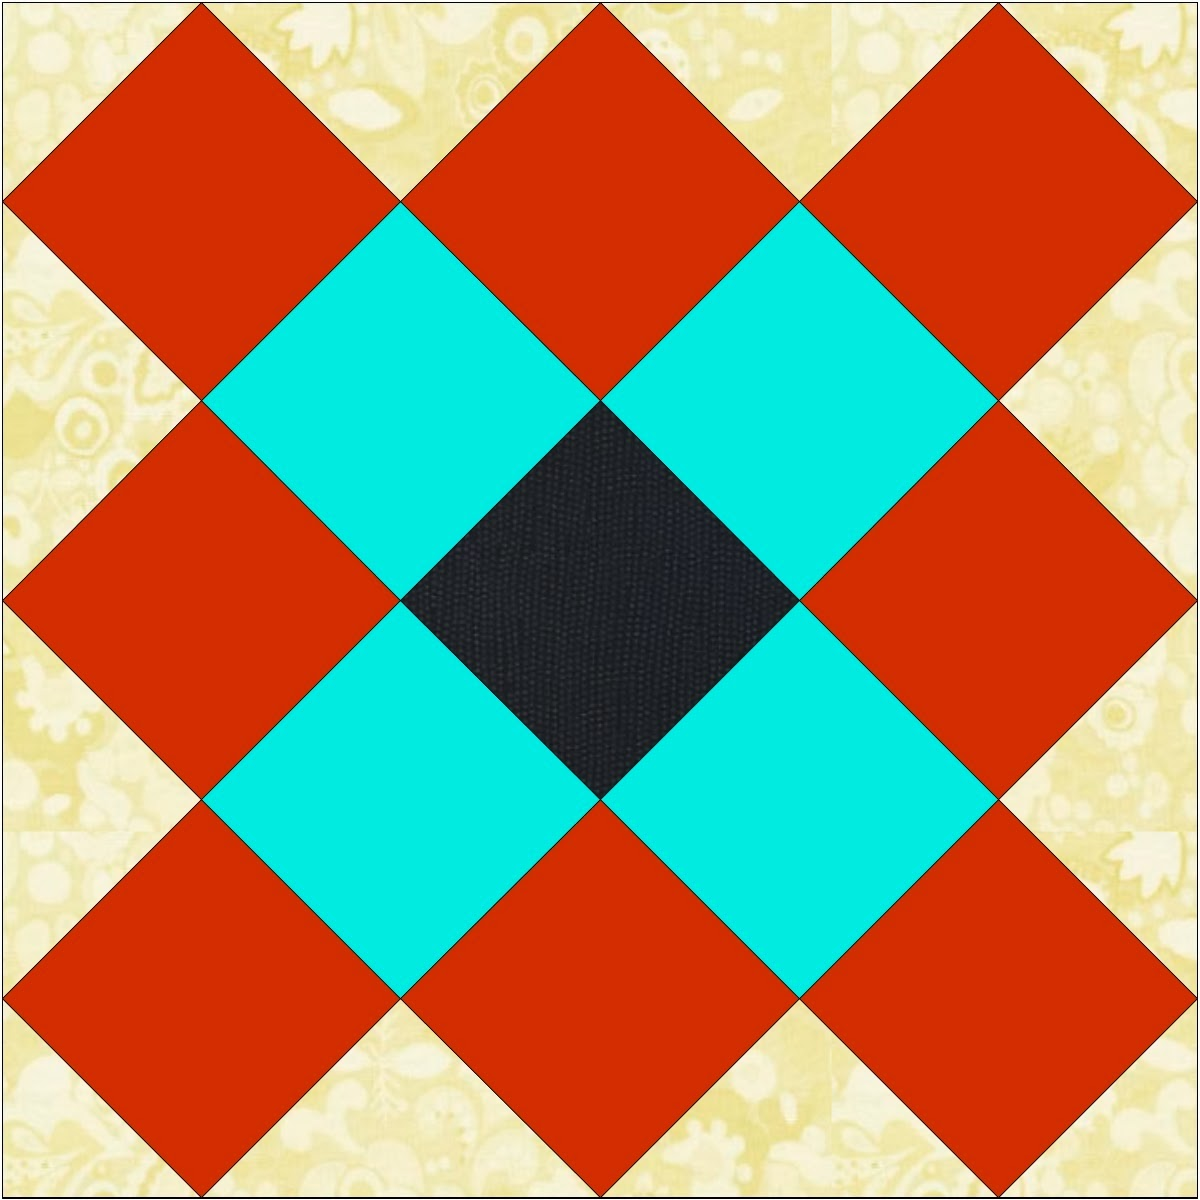 Sew Fresh Quilts: Granny Square Quilt Block Tutorial - Part 1 : traditional quilt block patterns - Adamdwight.com